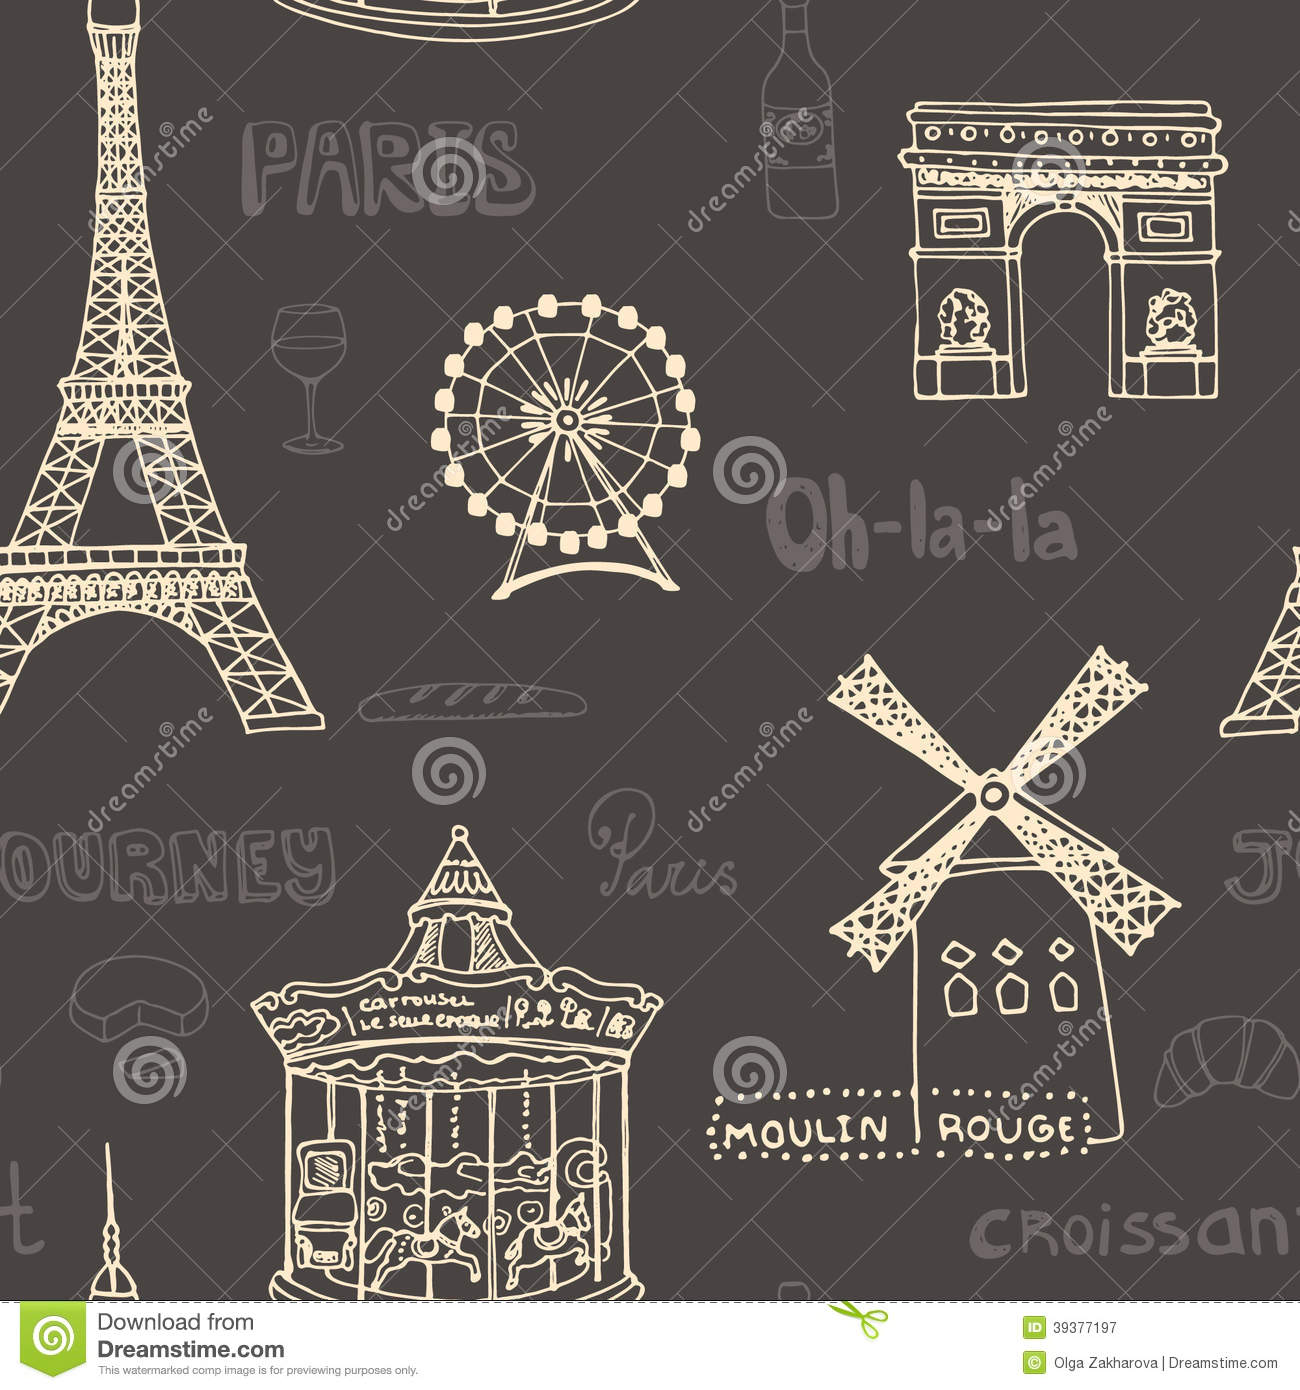 Perfect paris seamless pattern with all symbols stock illustration perfect paris seamless pattern with all symbols biocorpaavc